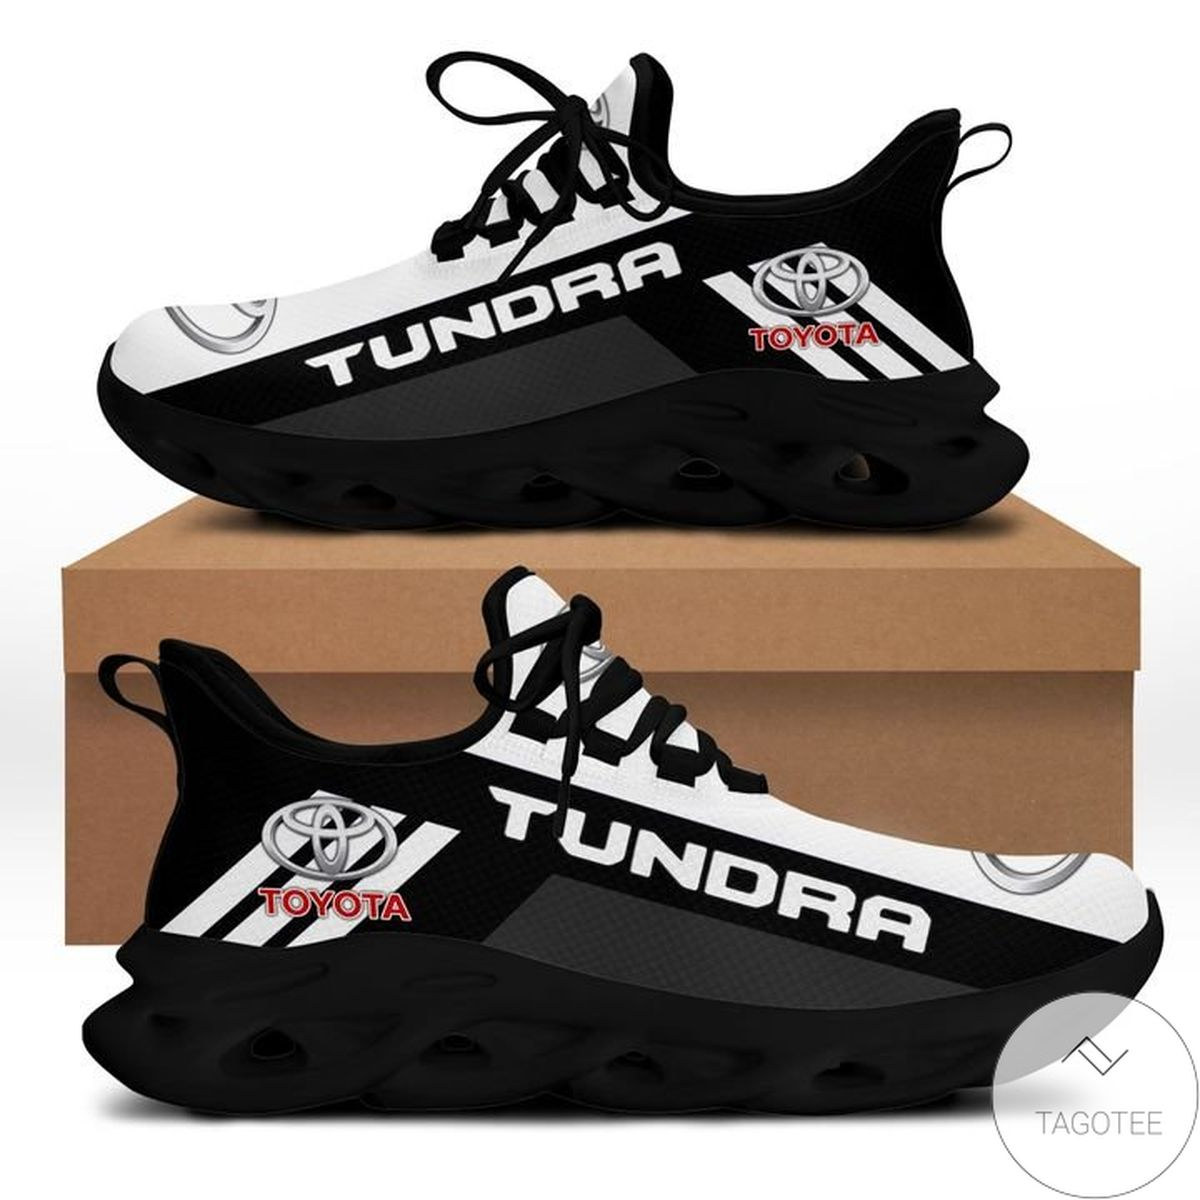 Toyota Tundra White Yeezy Running Sneaker Max Soul Shoes